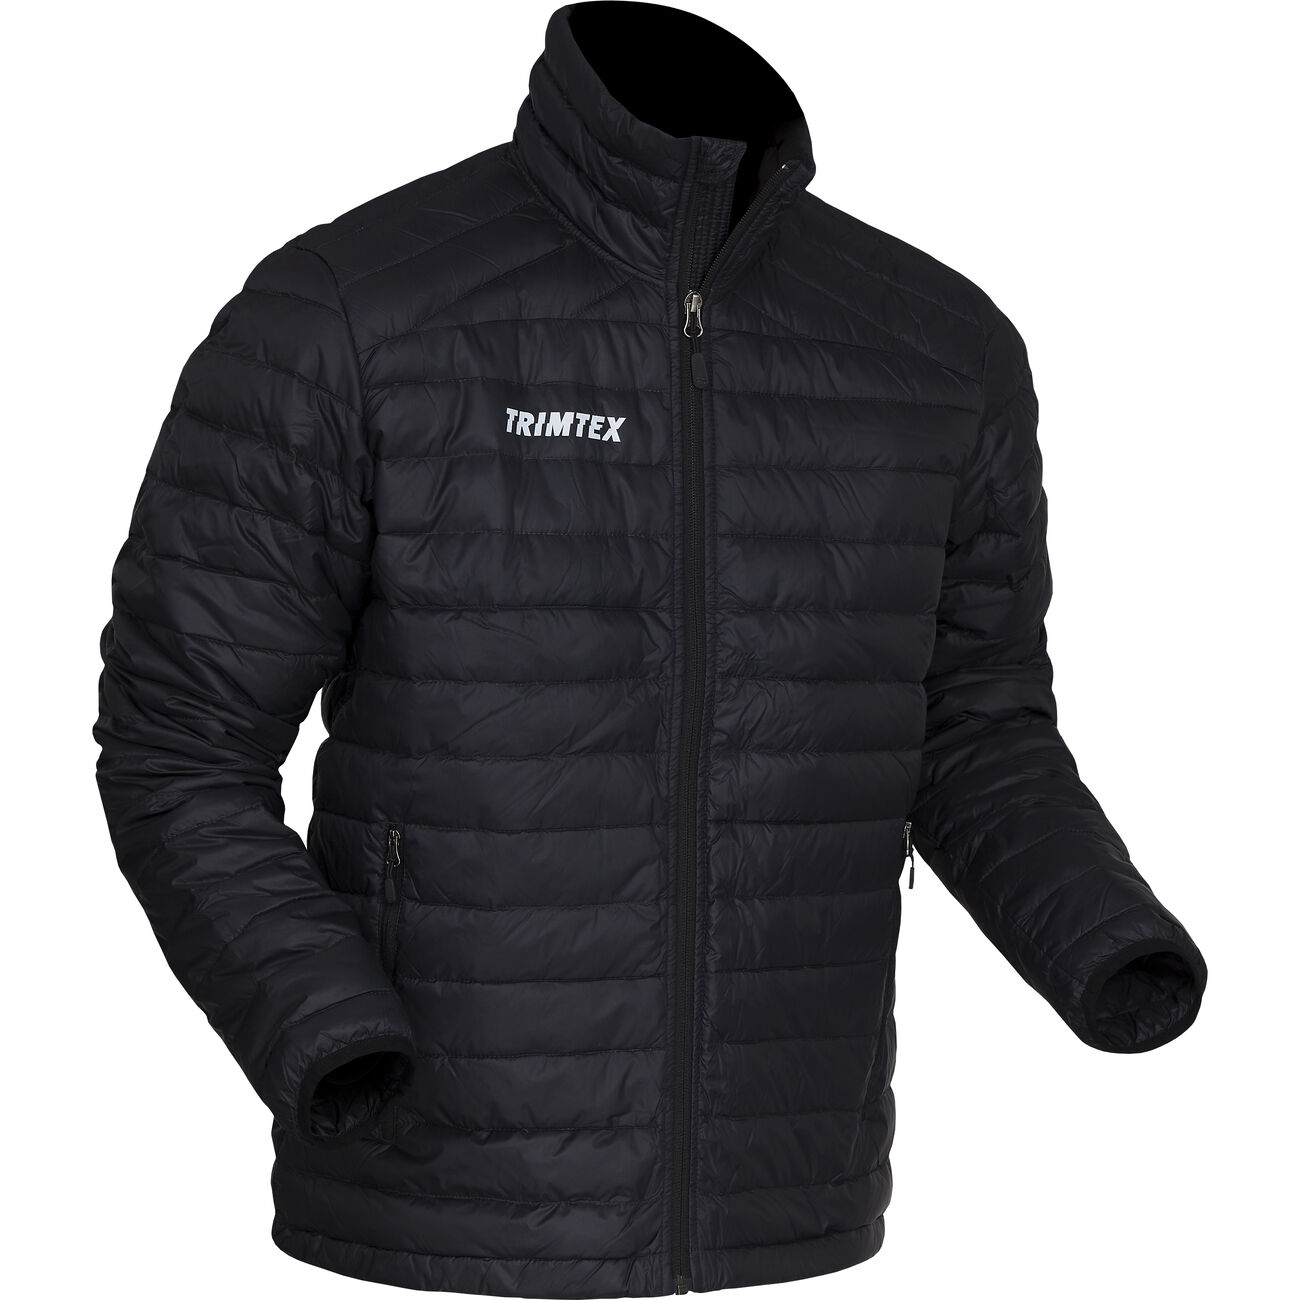 Storm Lightweight down jacket men's